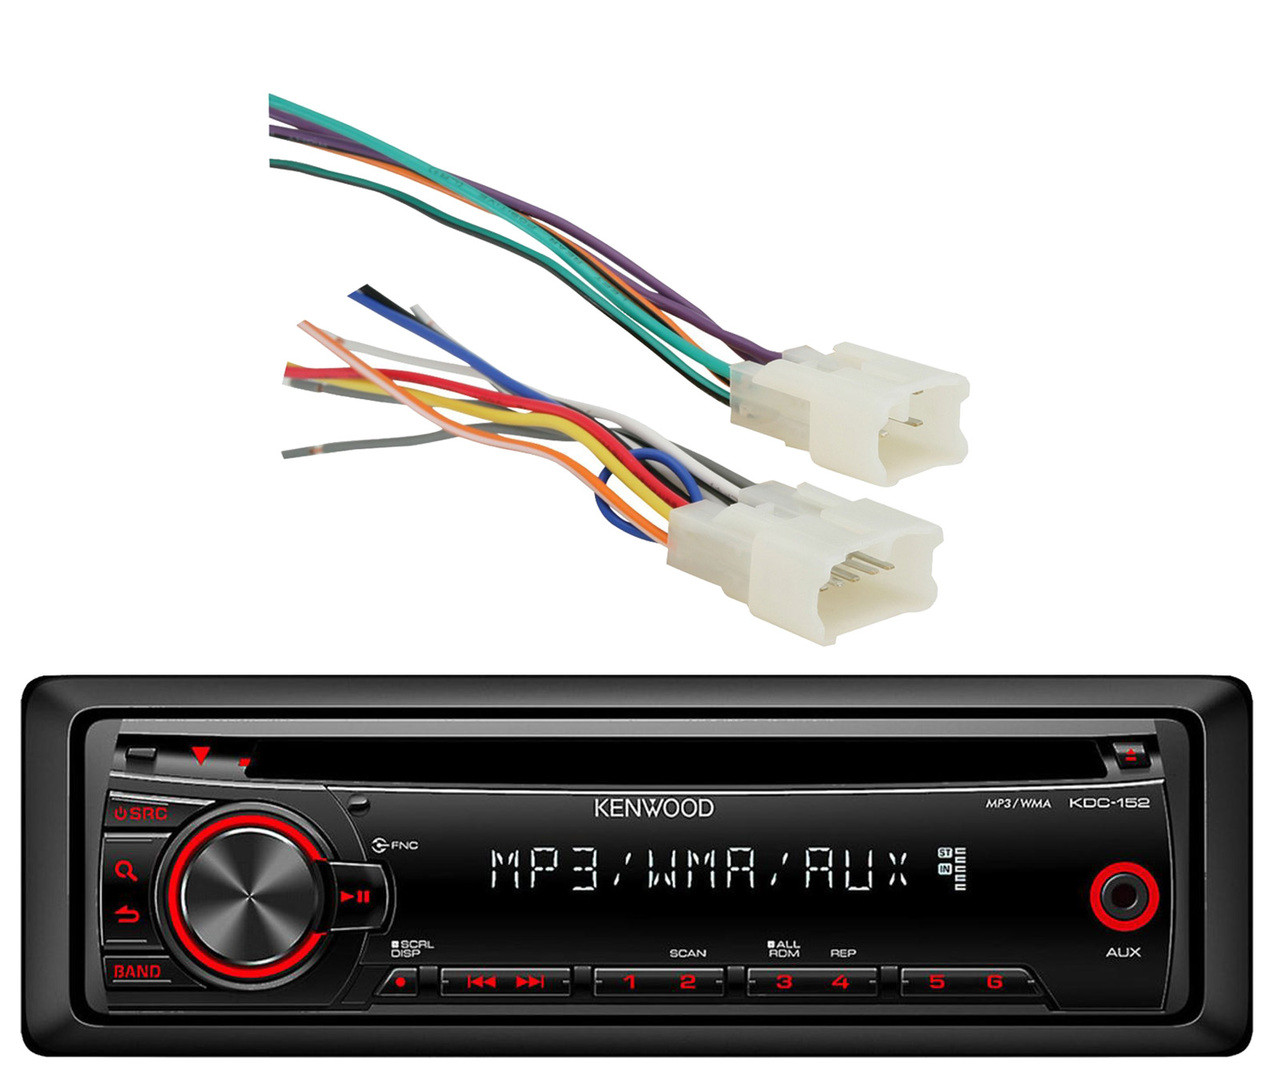 Kenwood InDash CD Mp3 AUX Car Stereo Receiver,70-1761 Metra Toyota on kenwood kdc 138 wire harness, 152 wiring harness, kenwood 152 cd player, kenwood kdc-152 manual,